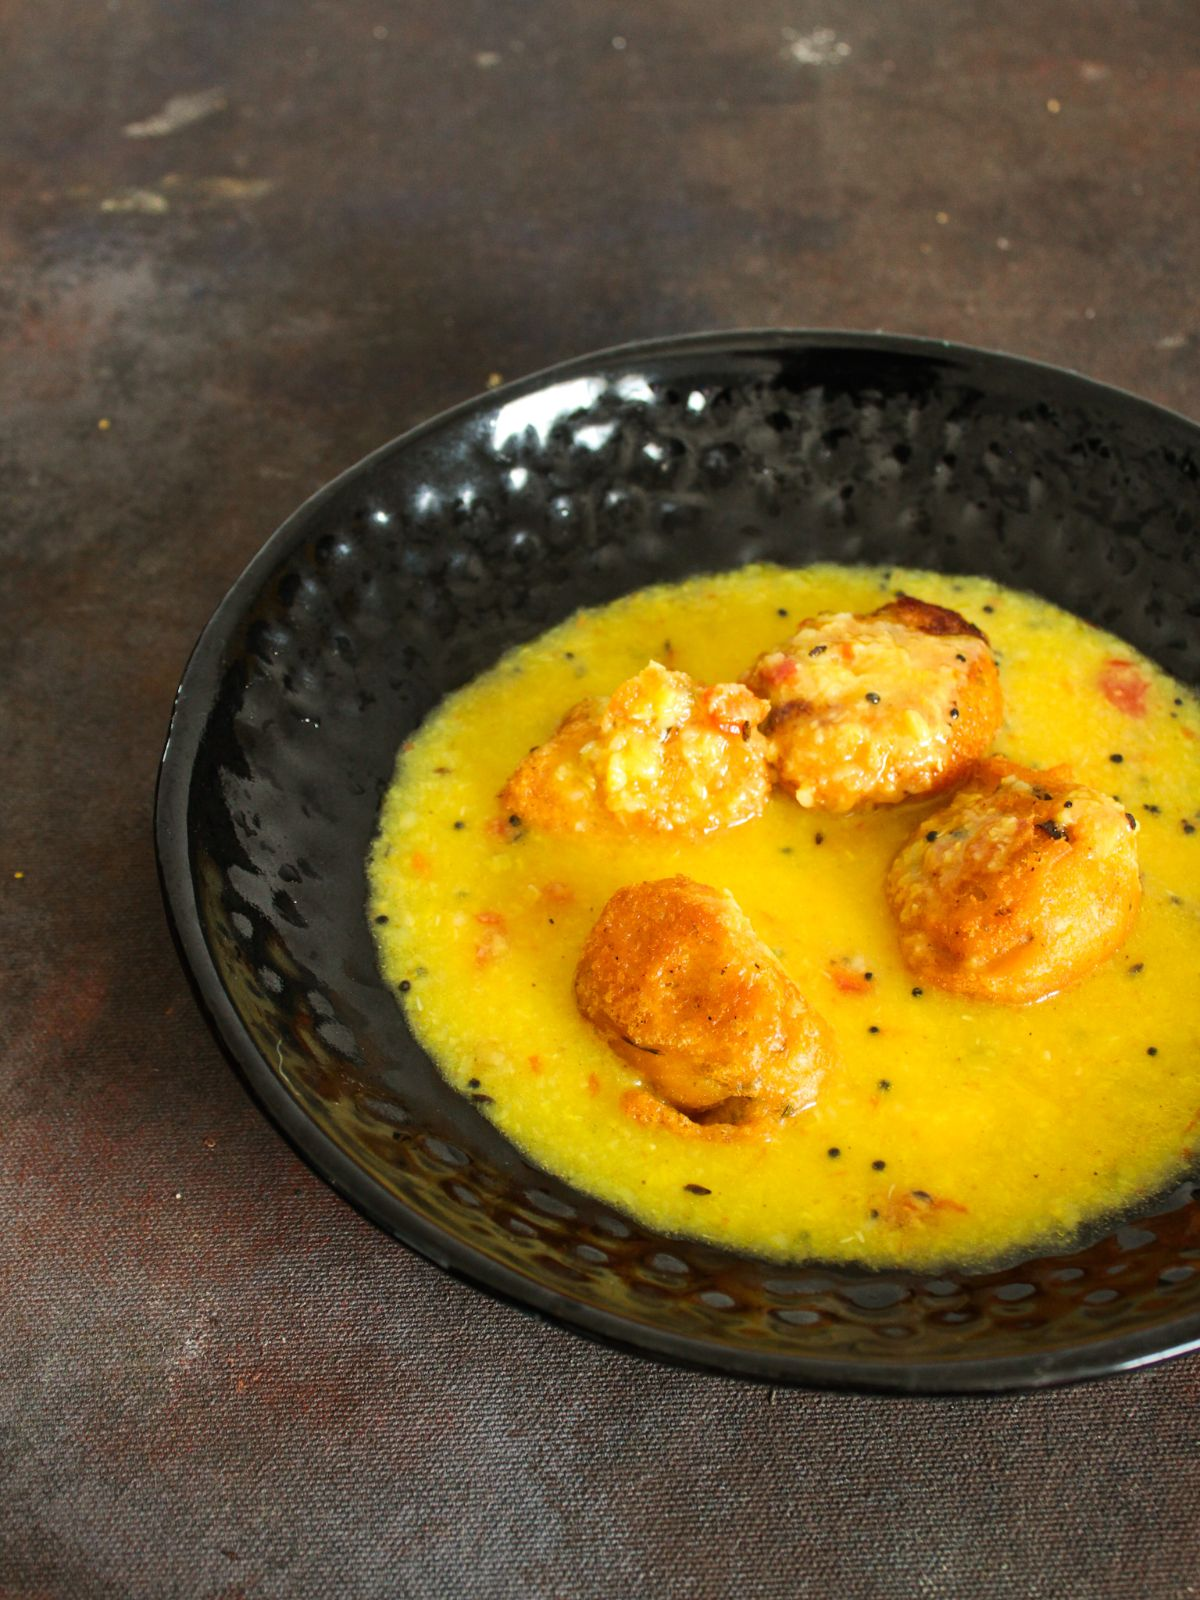 Yellow soup over lentil fritters